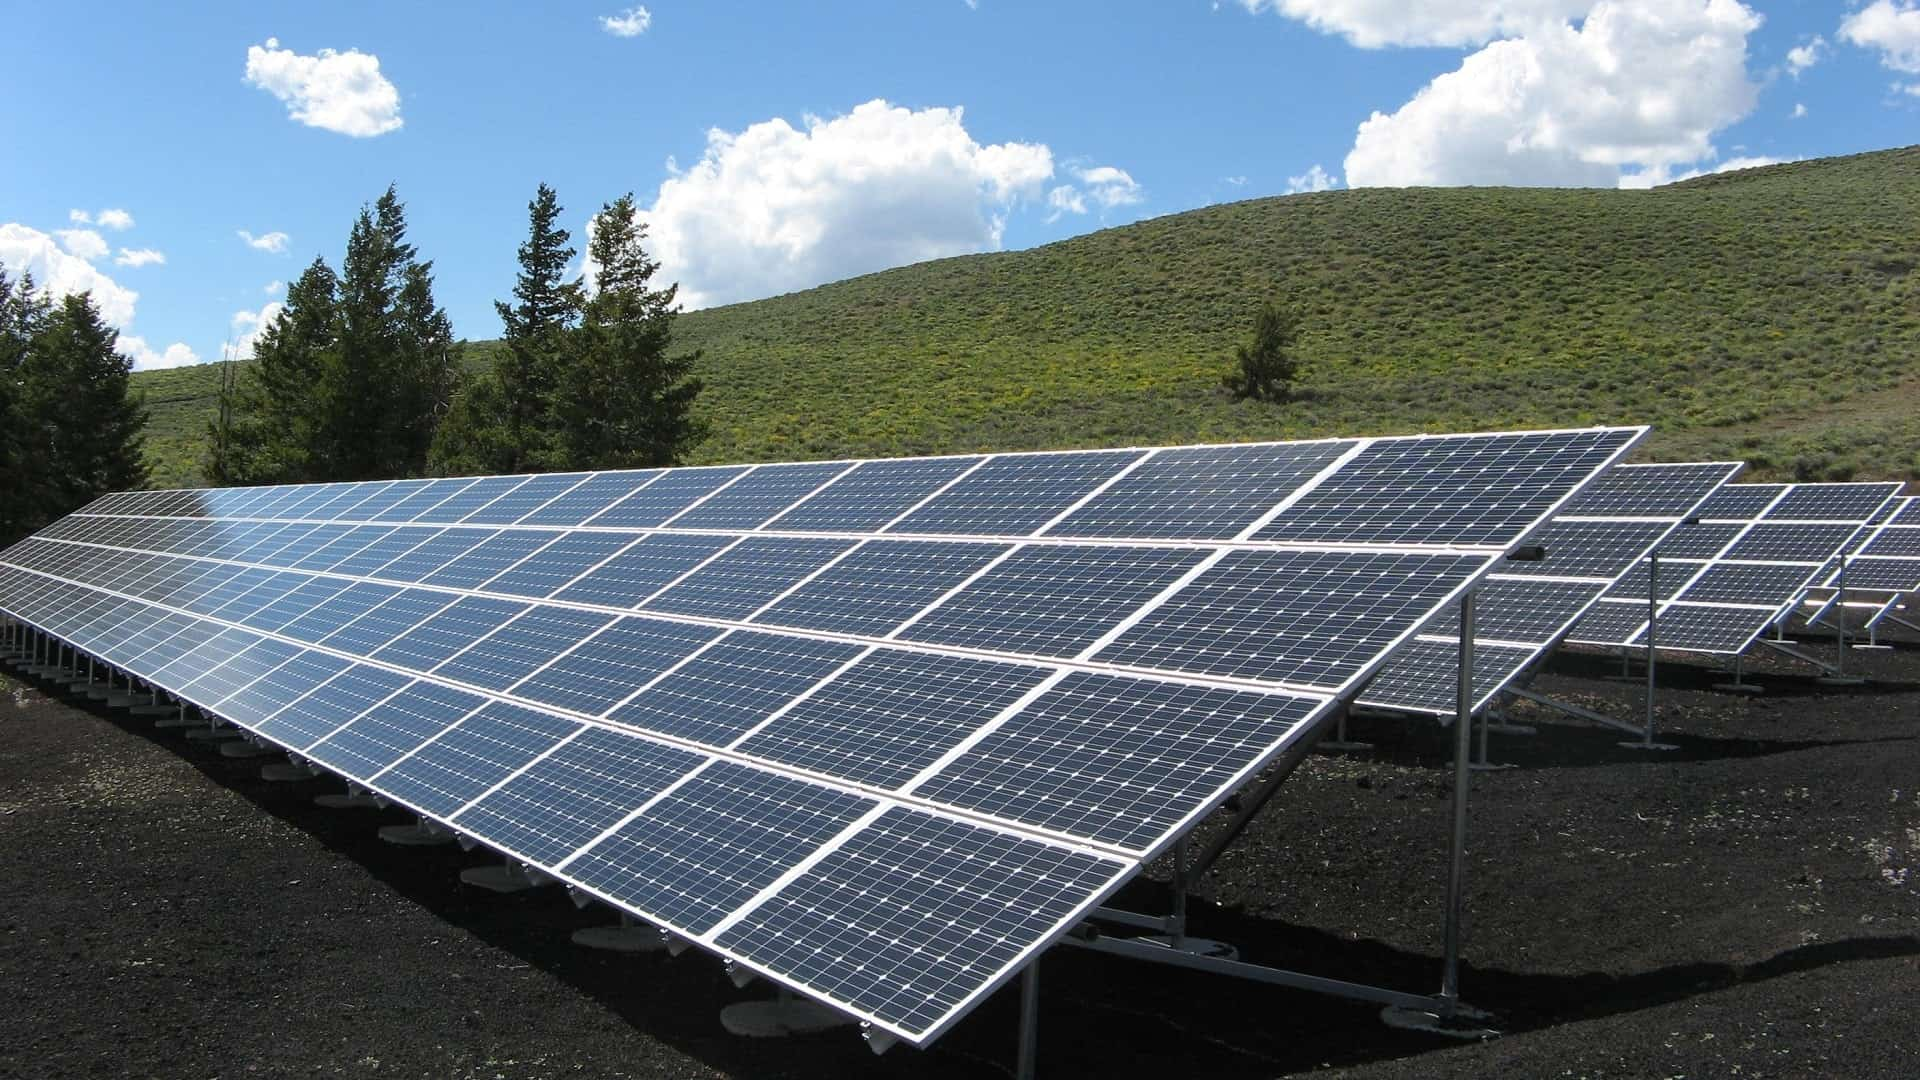 Recycling Used Solar Panels